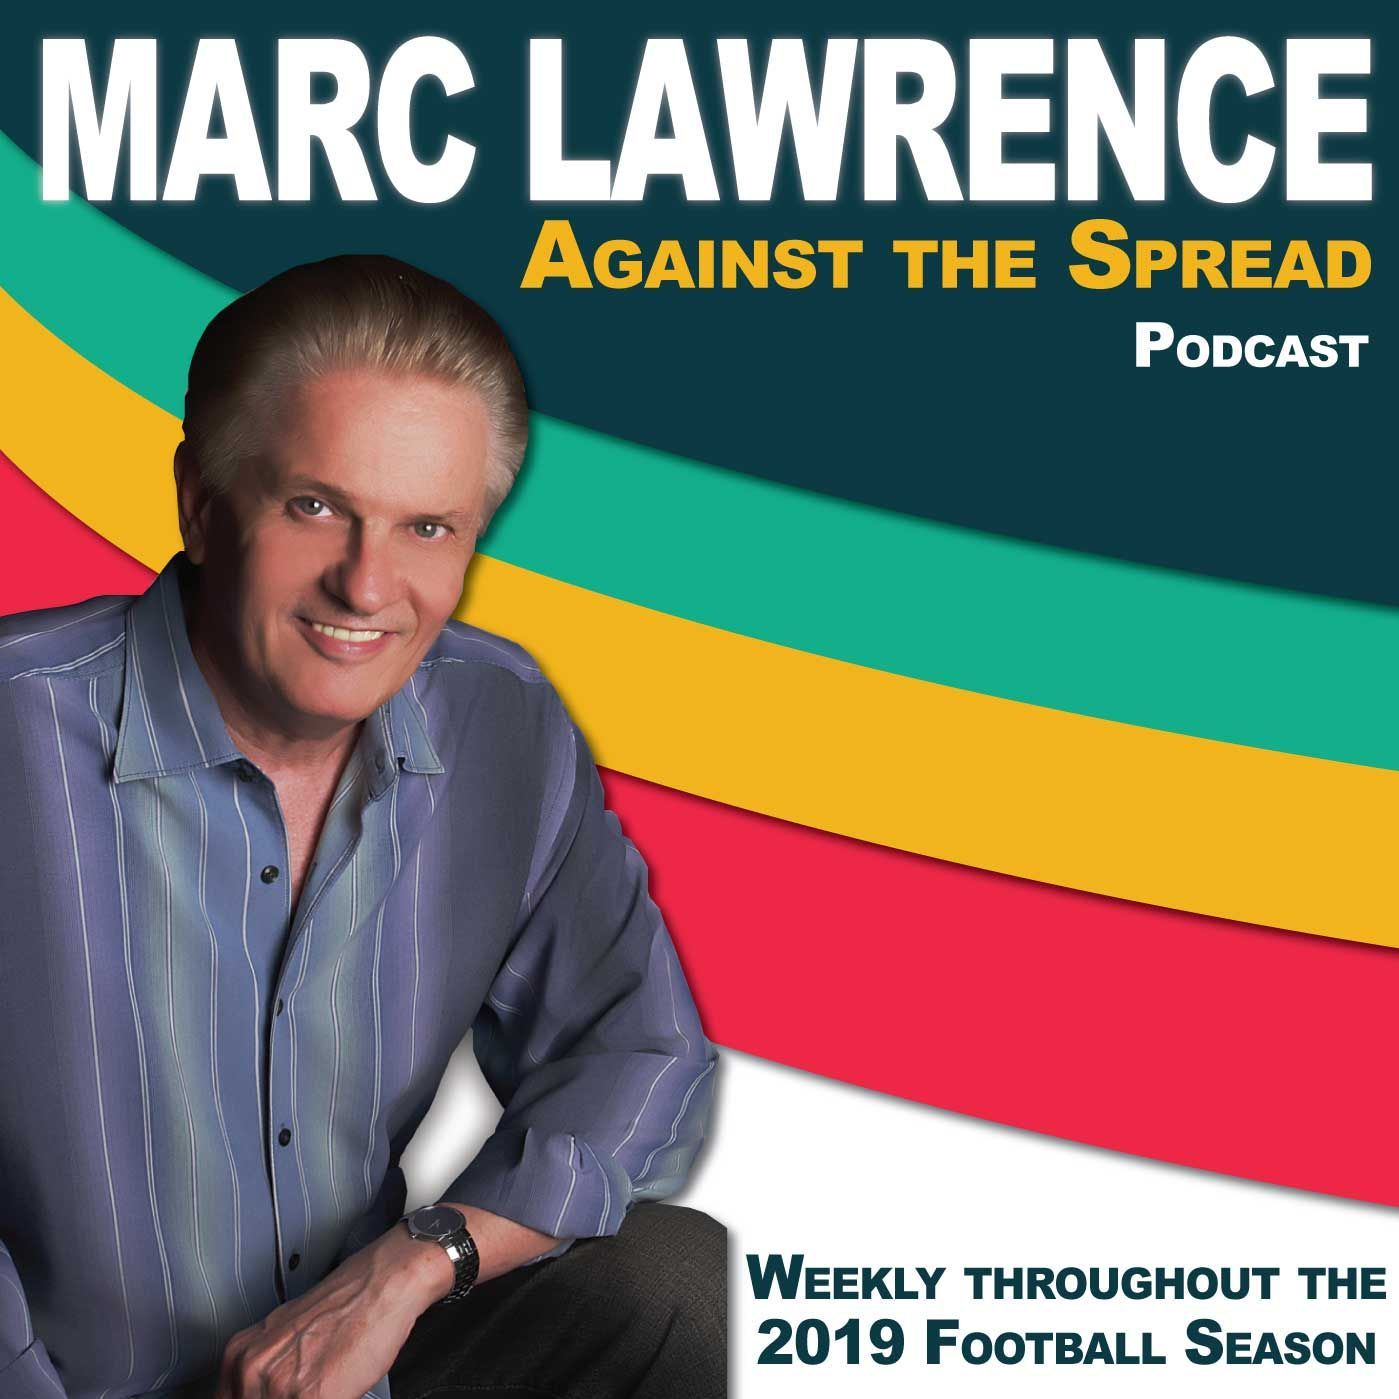 2019-12-11 Marc Lawrence Against the Spread